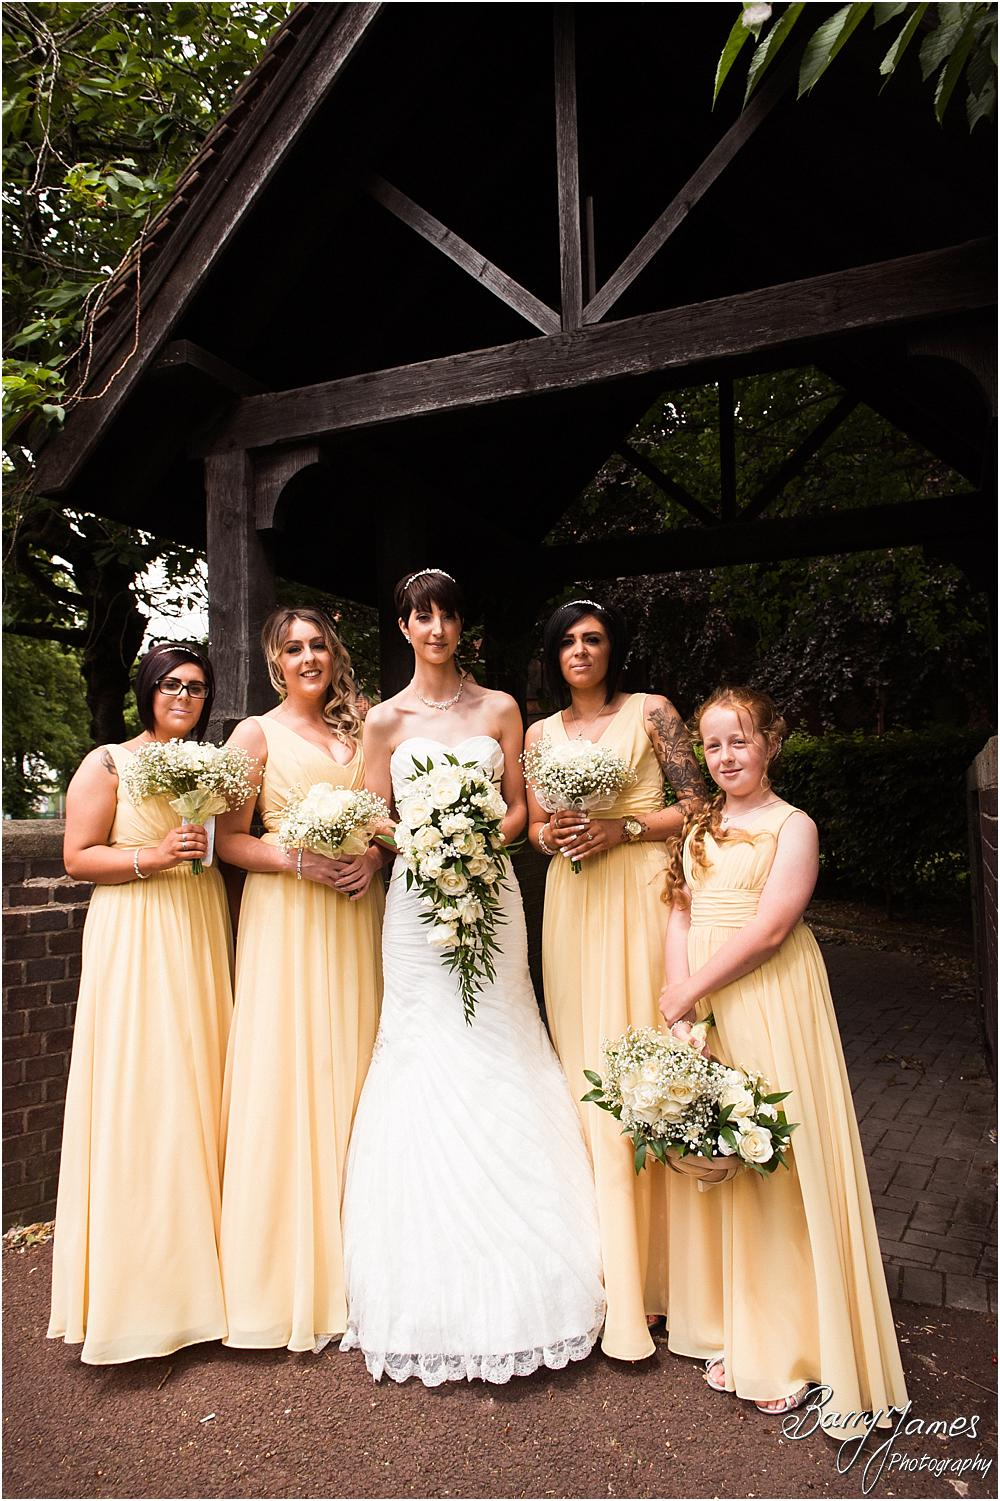 Photographs of the bridal party at All Saints Church in Bloxwich by Walsall Wedding Photographer Barry James